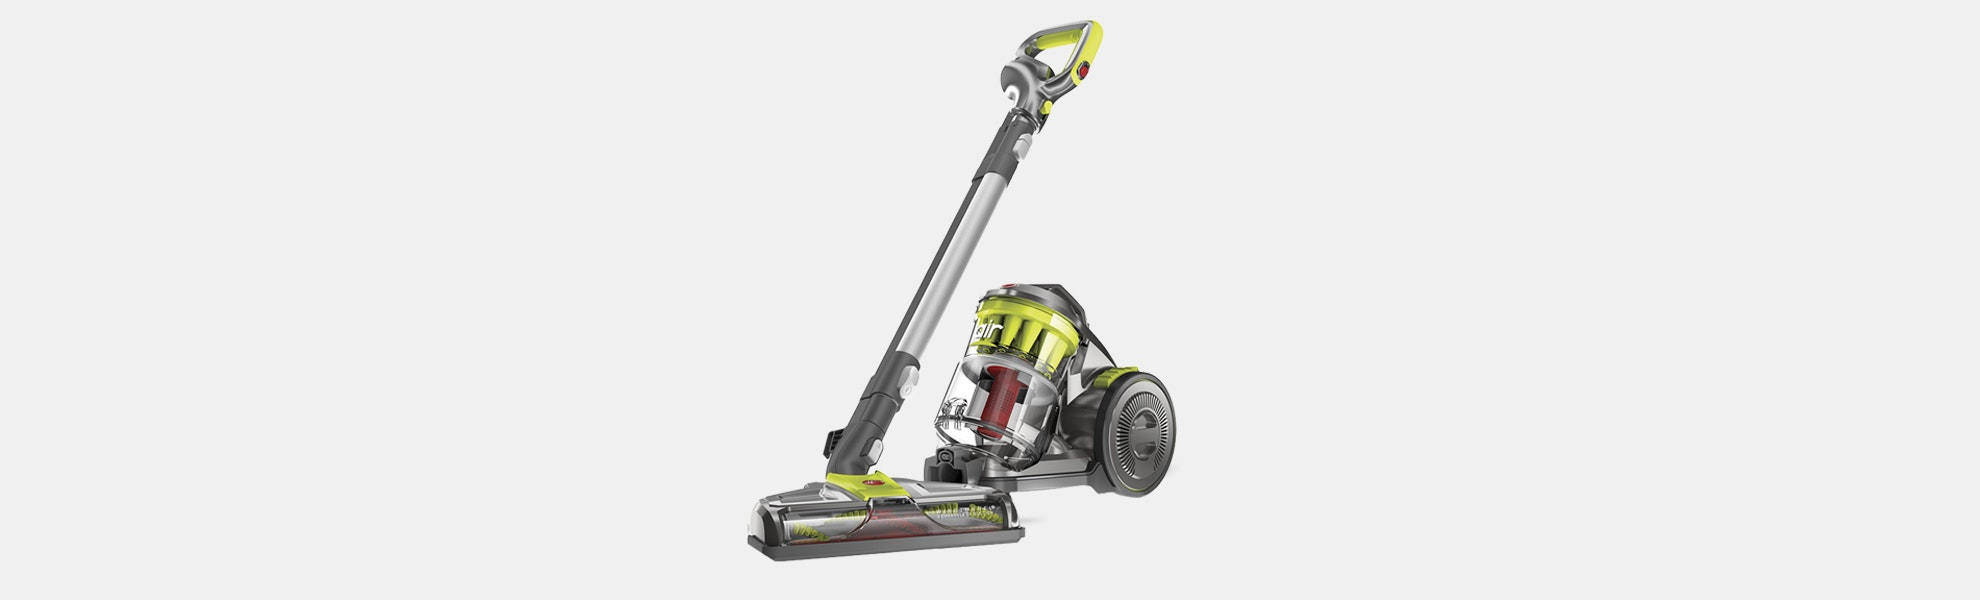 Hoover SH40070 Air Canister Bagless Vacuum